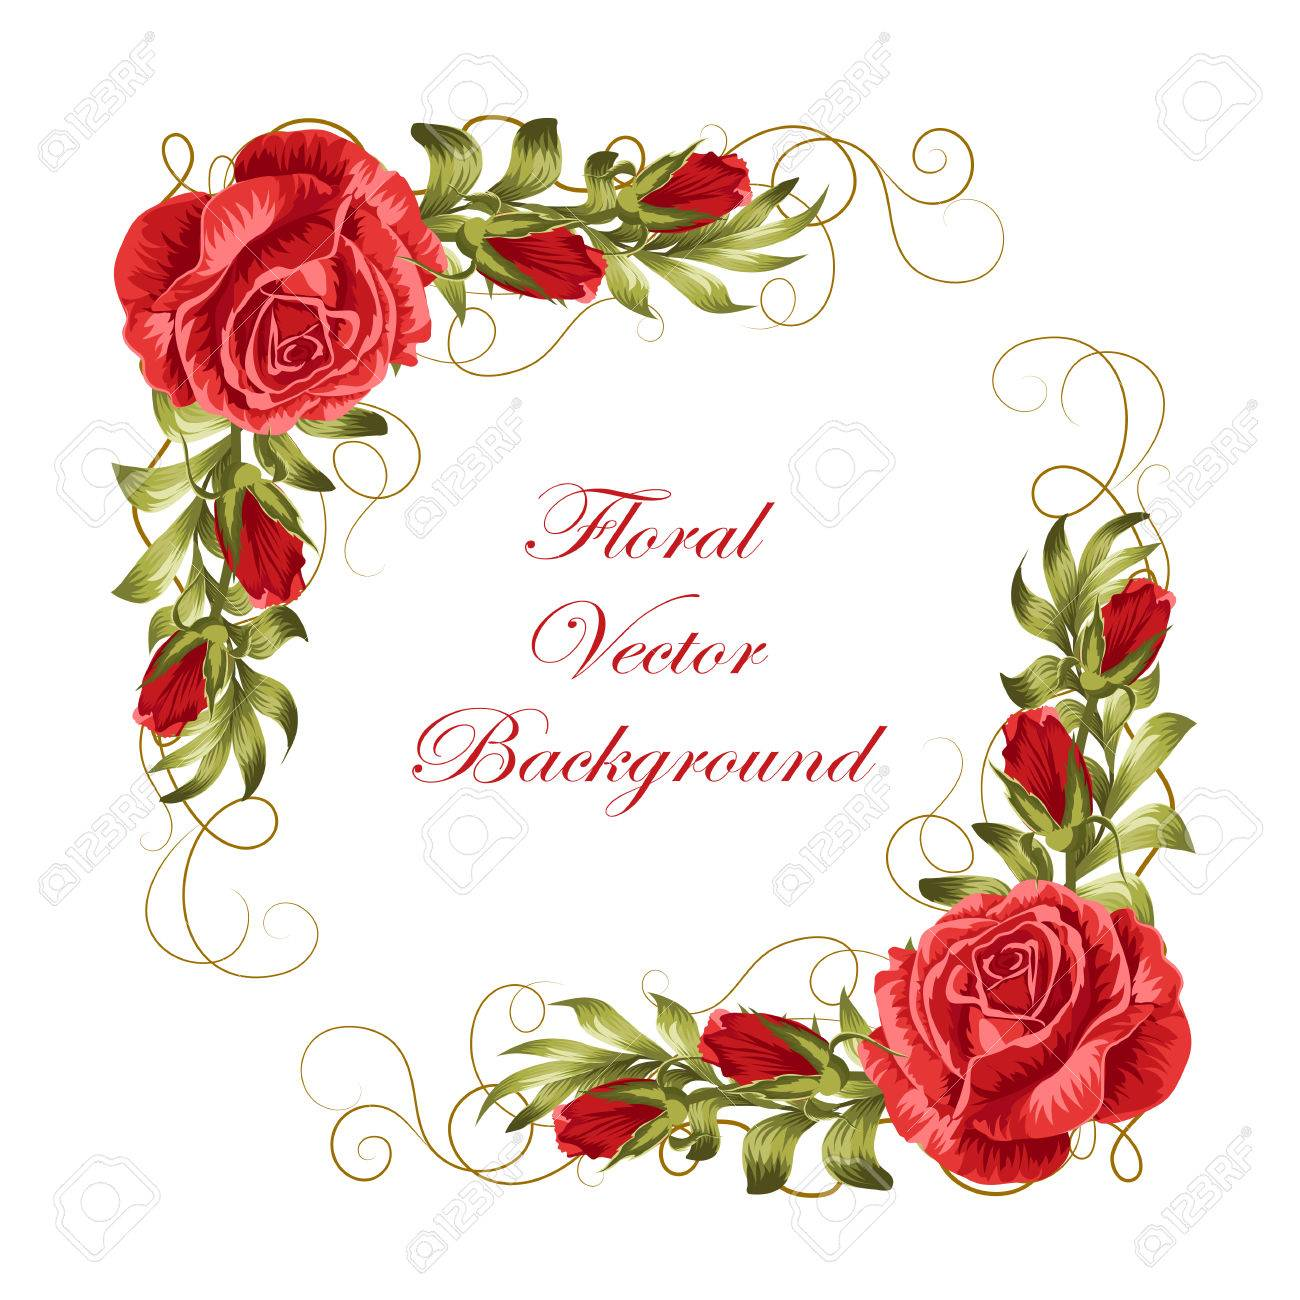 Beautiful frame with red roses and green leaves. Vector illustration isolated on white background. - 59050540